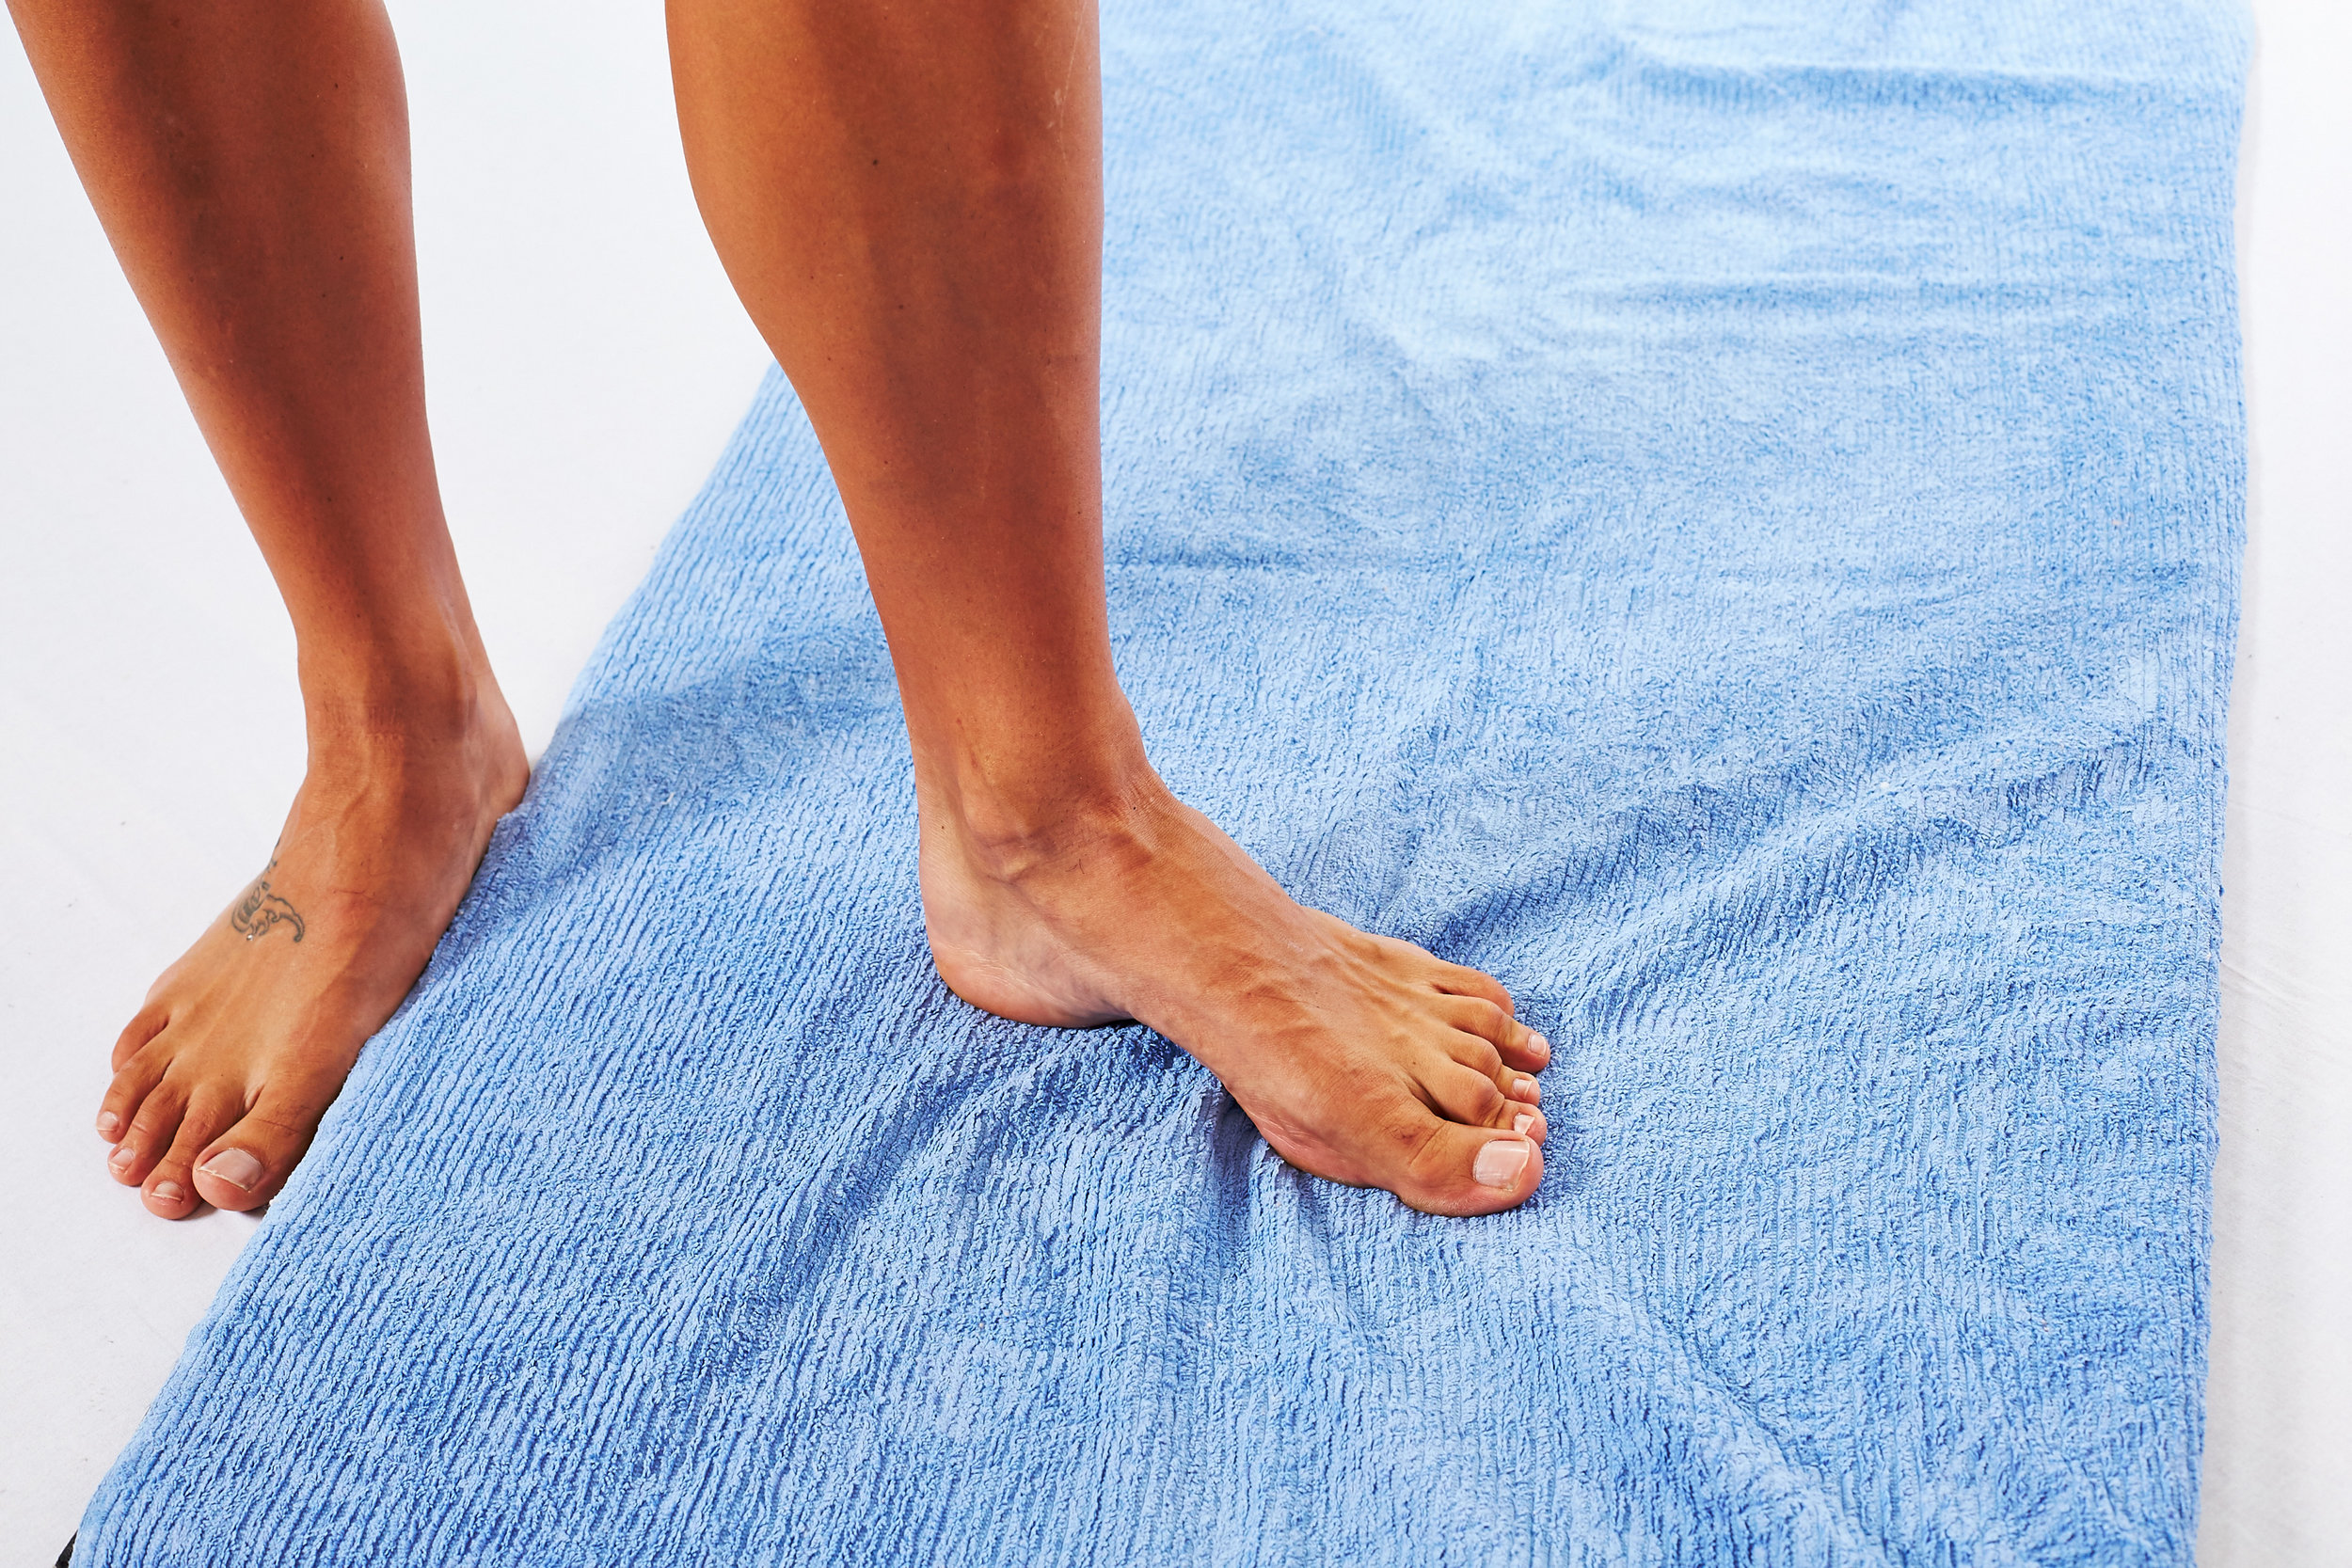 feet-towel-scrunch-when